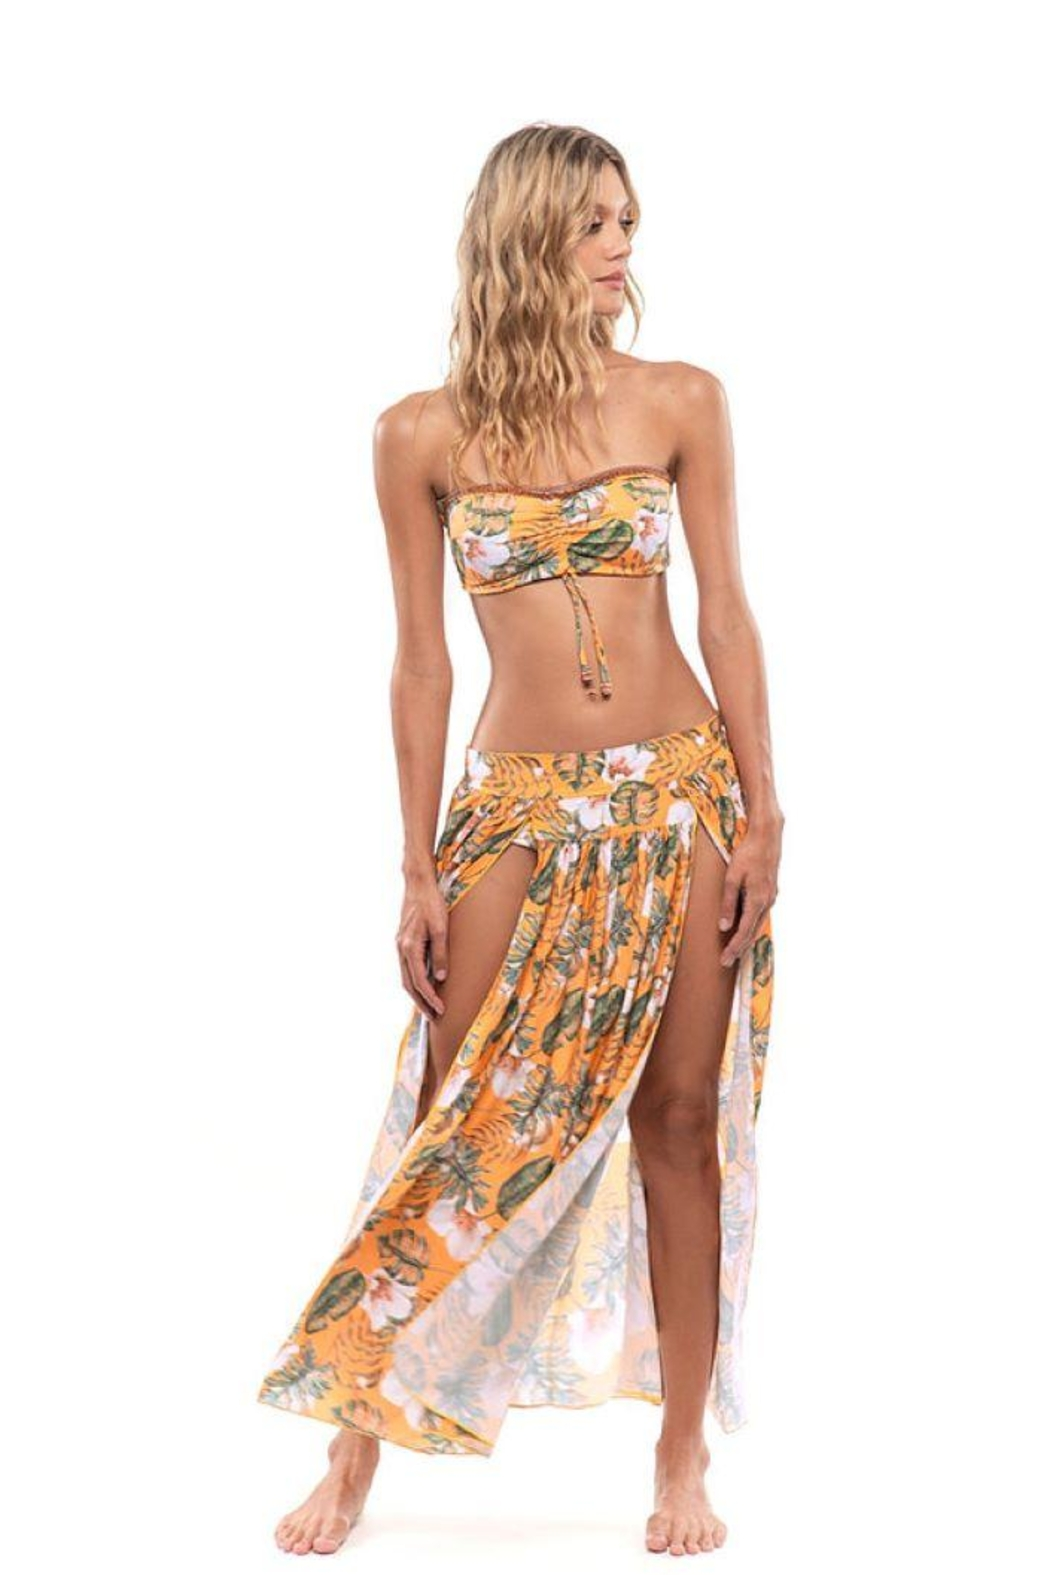 Mystical Swimwear Wild Floral Cover-Up Skirt - Main Image